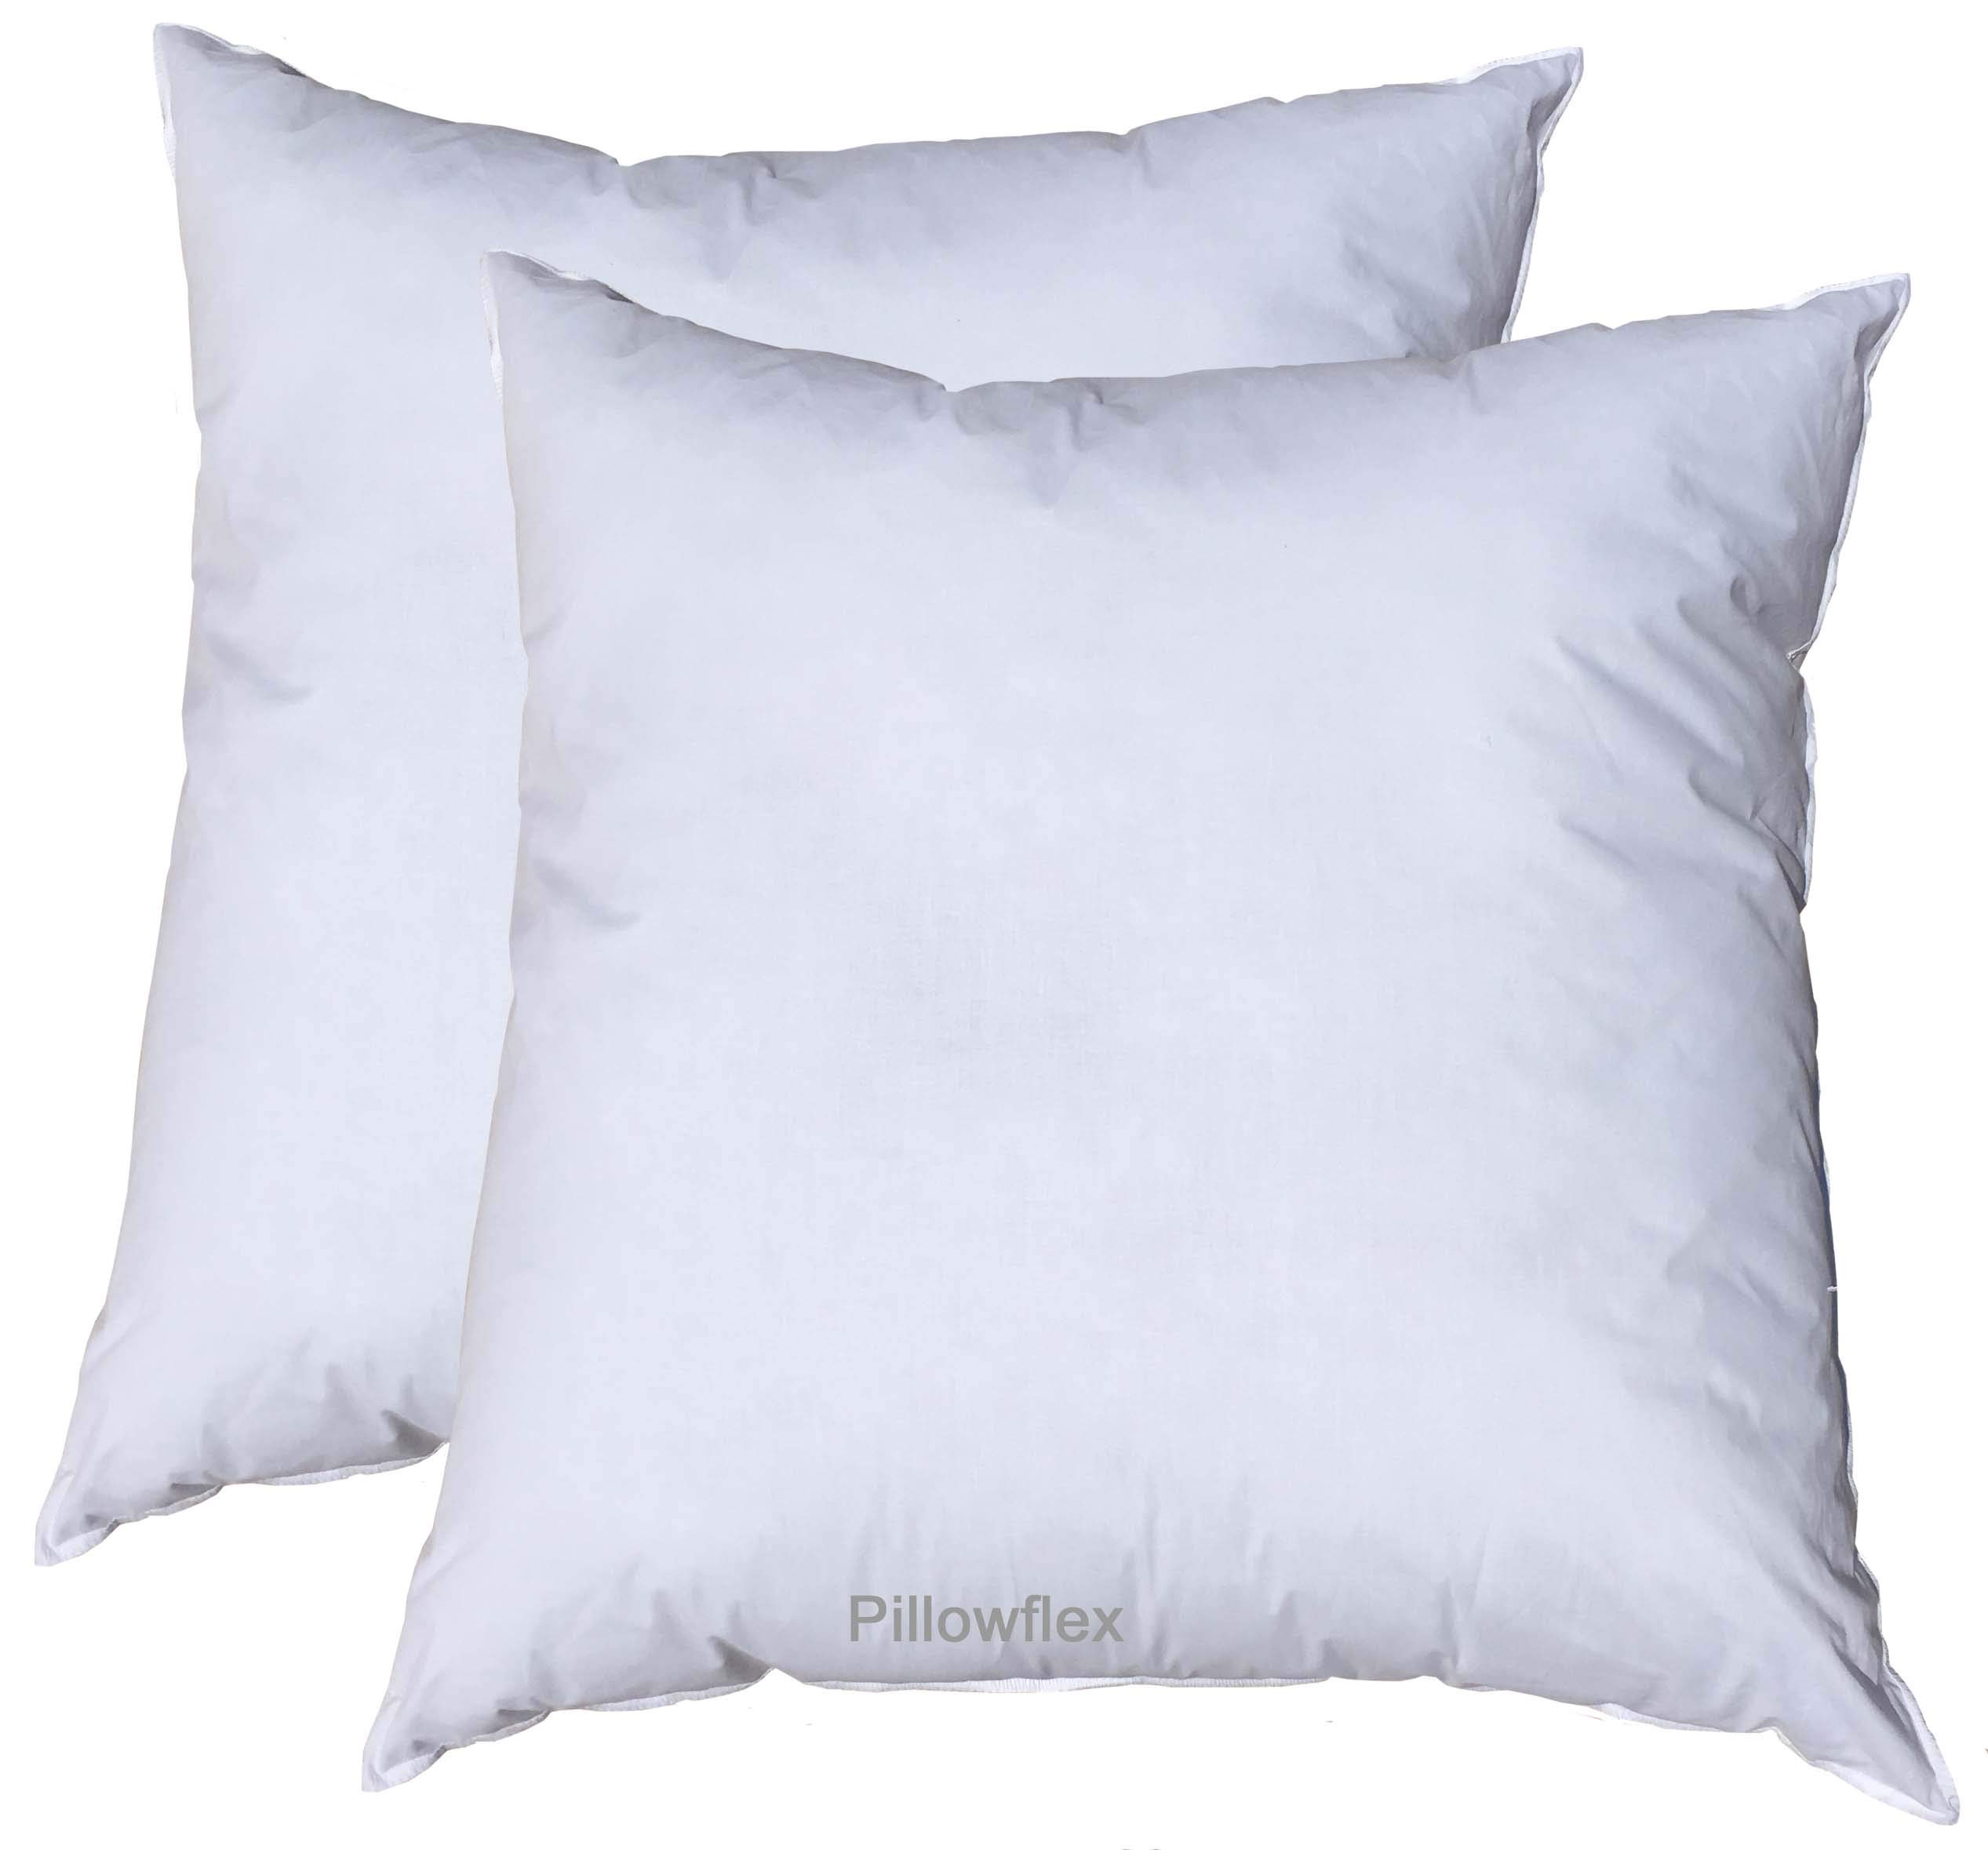 Pillowflex Premium Polyester Filled Pillow Form Inserts - Machine Washable - European Square - Made in USA (30x30 Pack of 2)